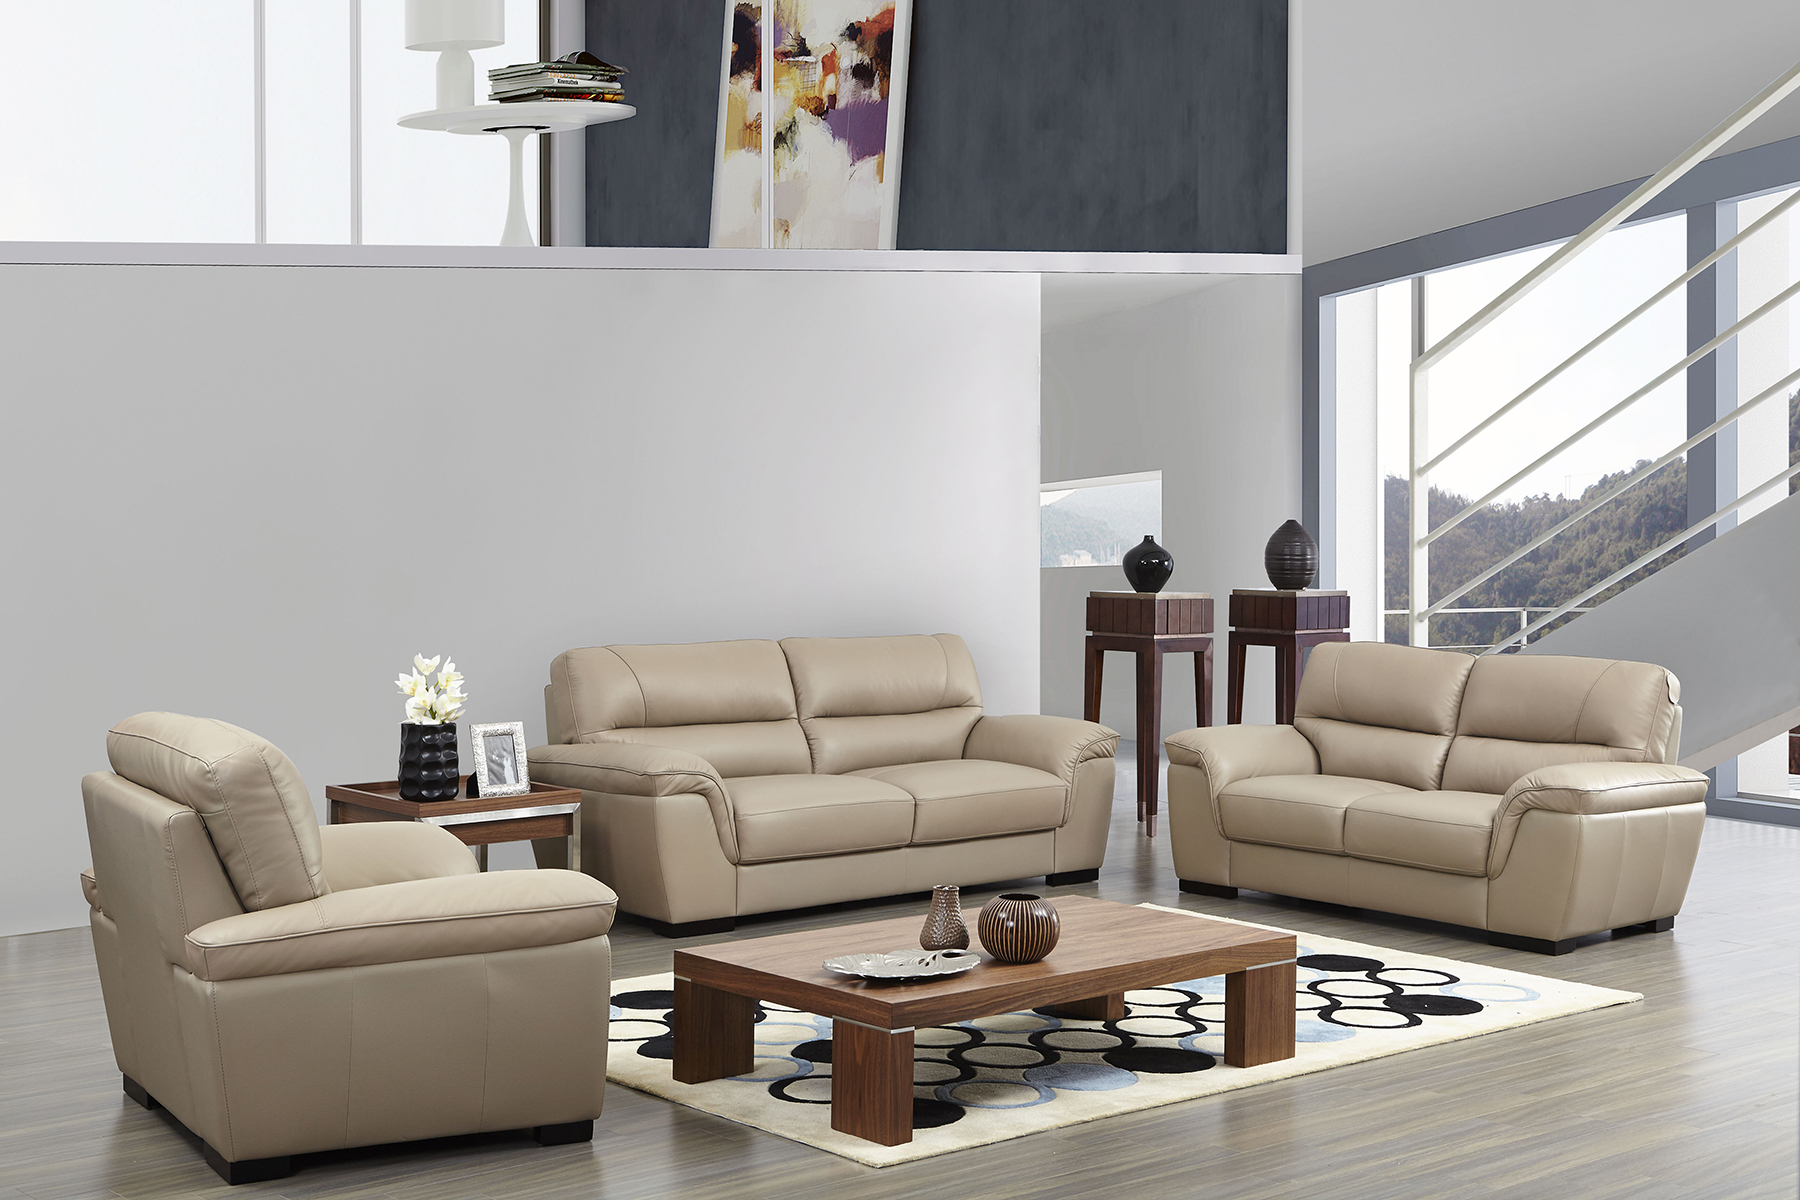 Contemporary Beige Leather Stylish Sofa Set with Wooden Legs San ...